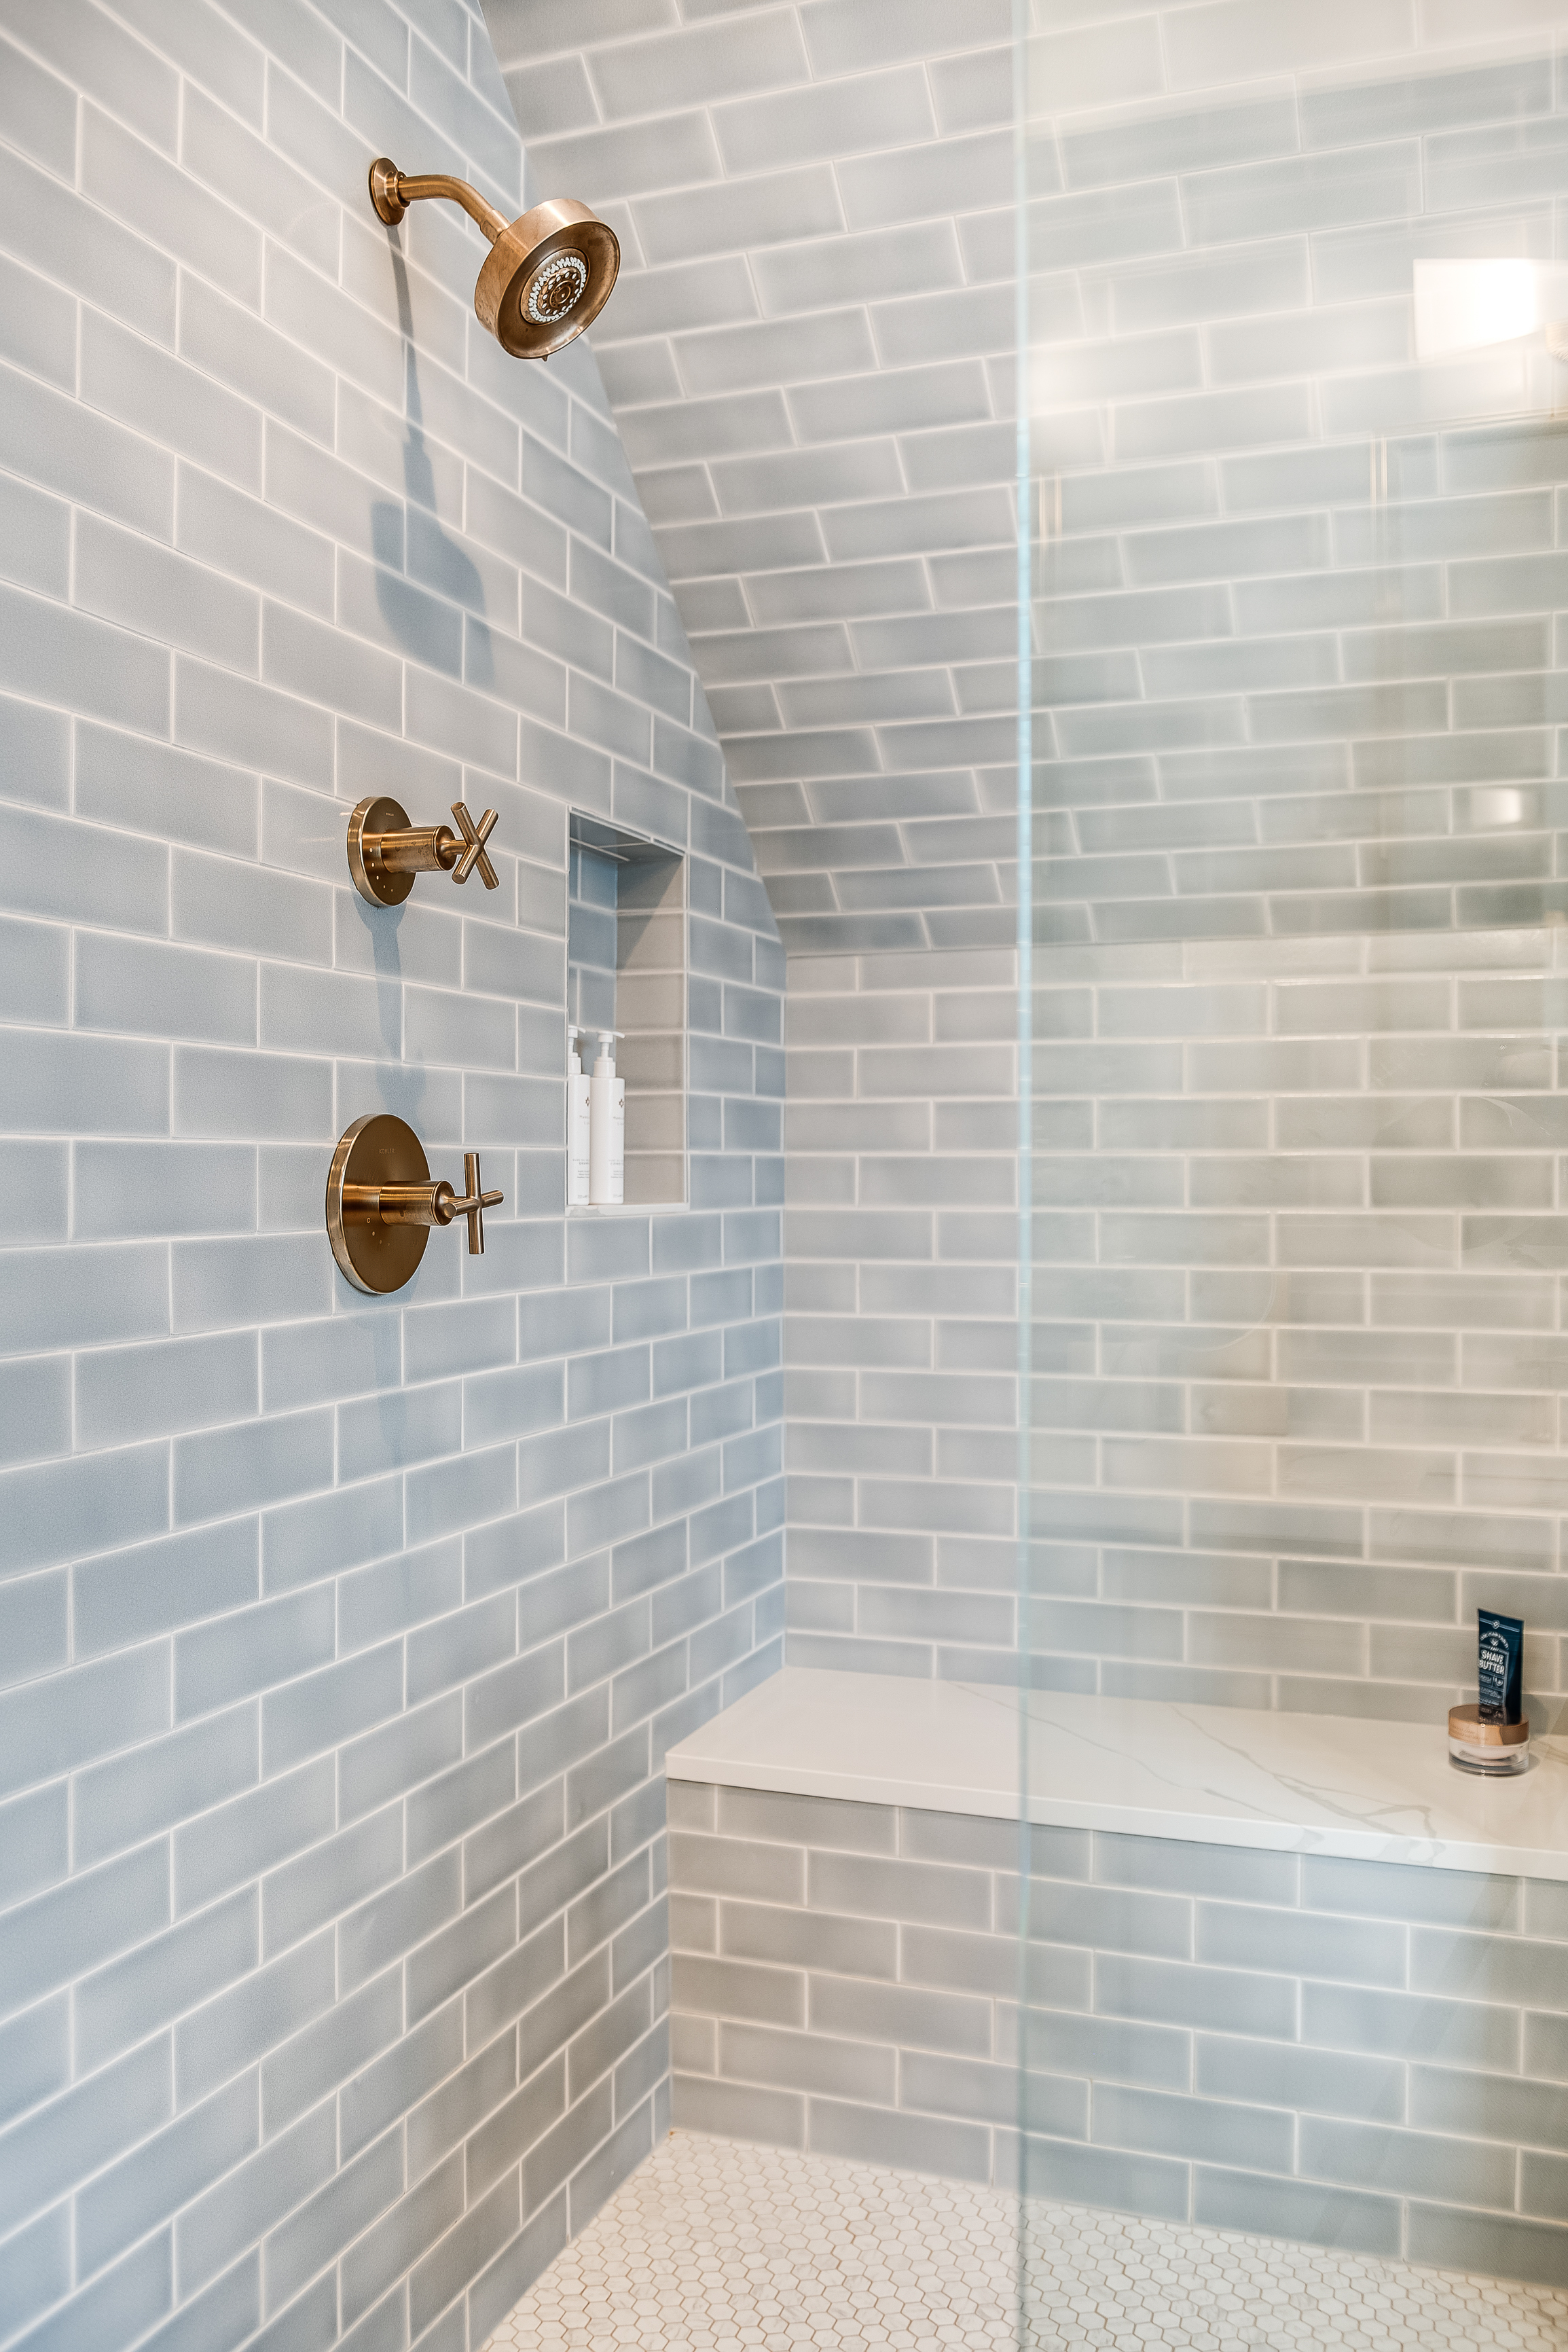 2018_img_q2_hi_res_RIGHTS_FIO_CREATIVE_PHOTO_cara_alyn_interiors_web_hi_resolution_bathroom_shower_surround_and-vanity_accent_wall_foggy_morning_ceramic_3x9_offset_glazed_edge_trim_SLANT_CEILING_FC217663_3_190205_201049.jpg?mtime=20190205201049#asset:435775